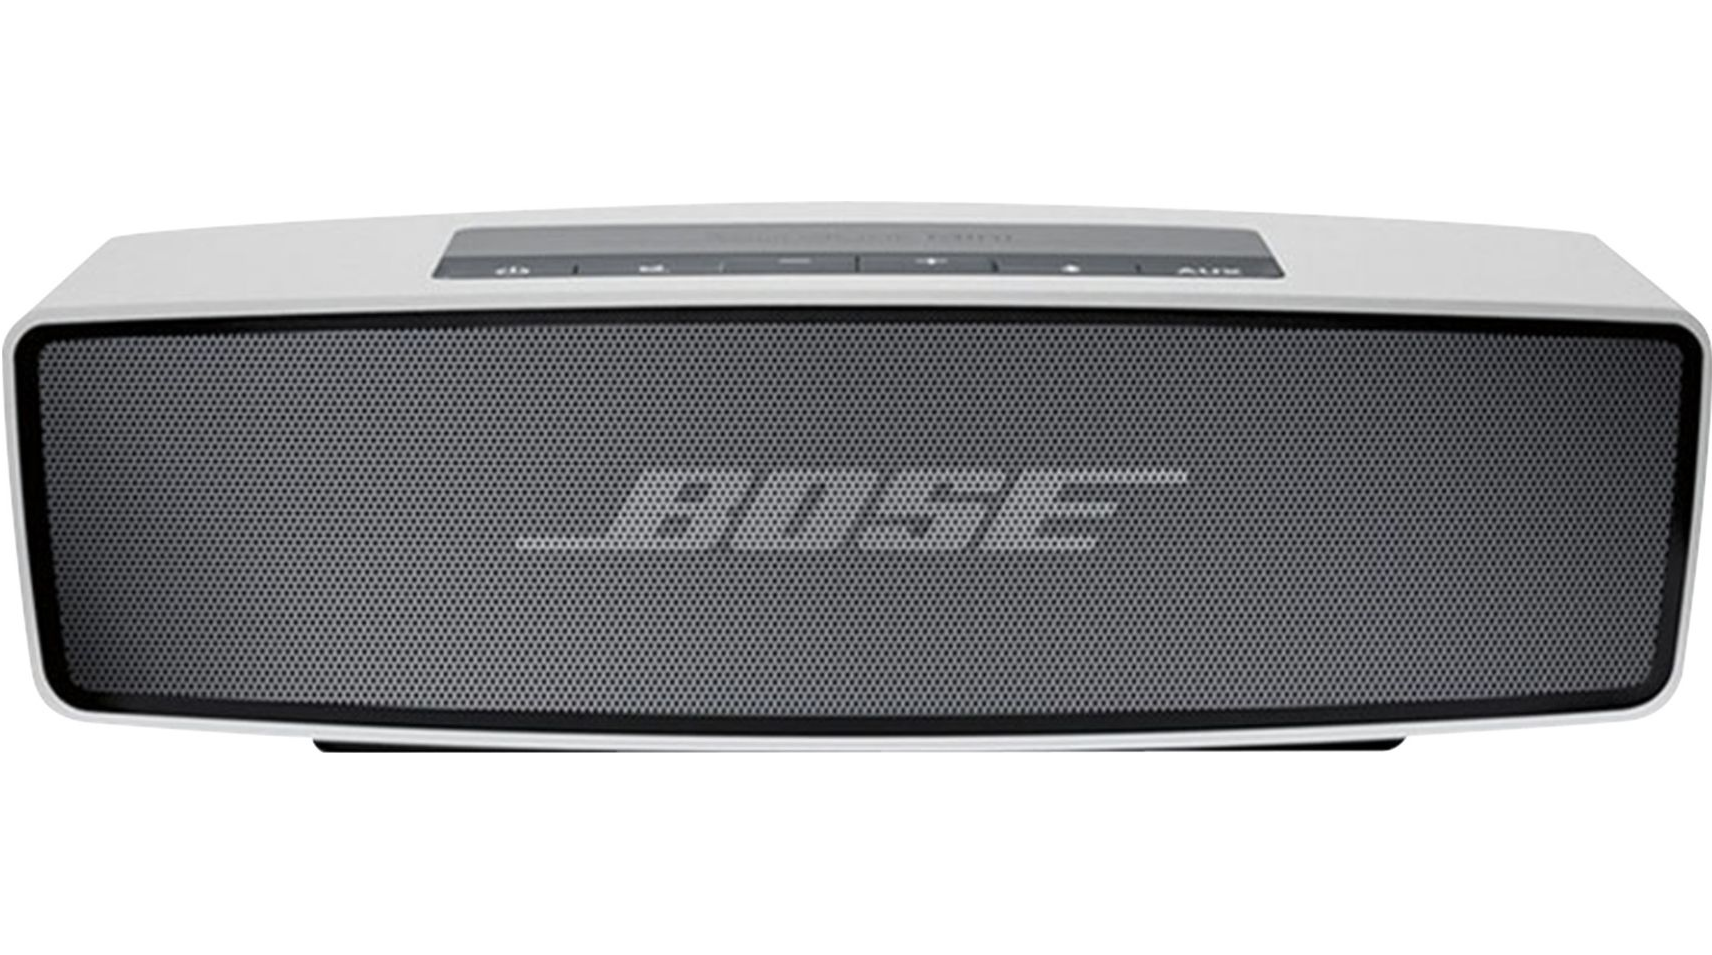 bose soundlink mini test complet enceintes portables. Black Bedroom Furniture Sets. Home Design Ideas